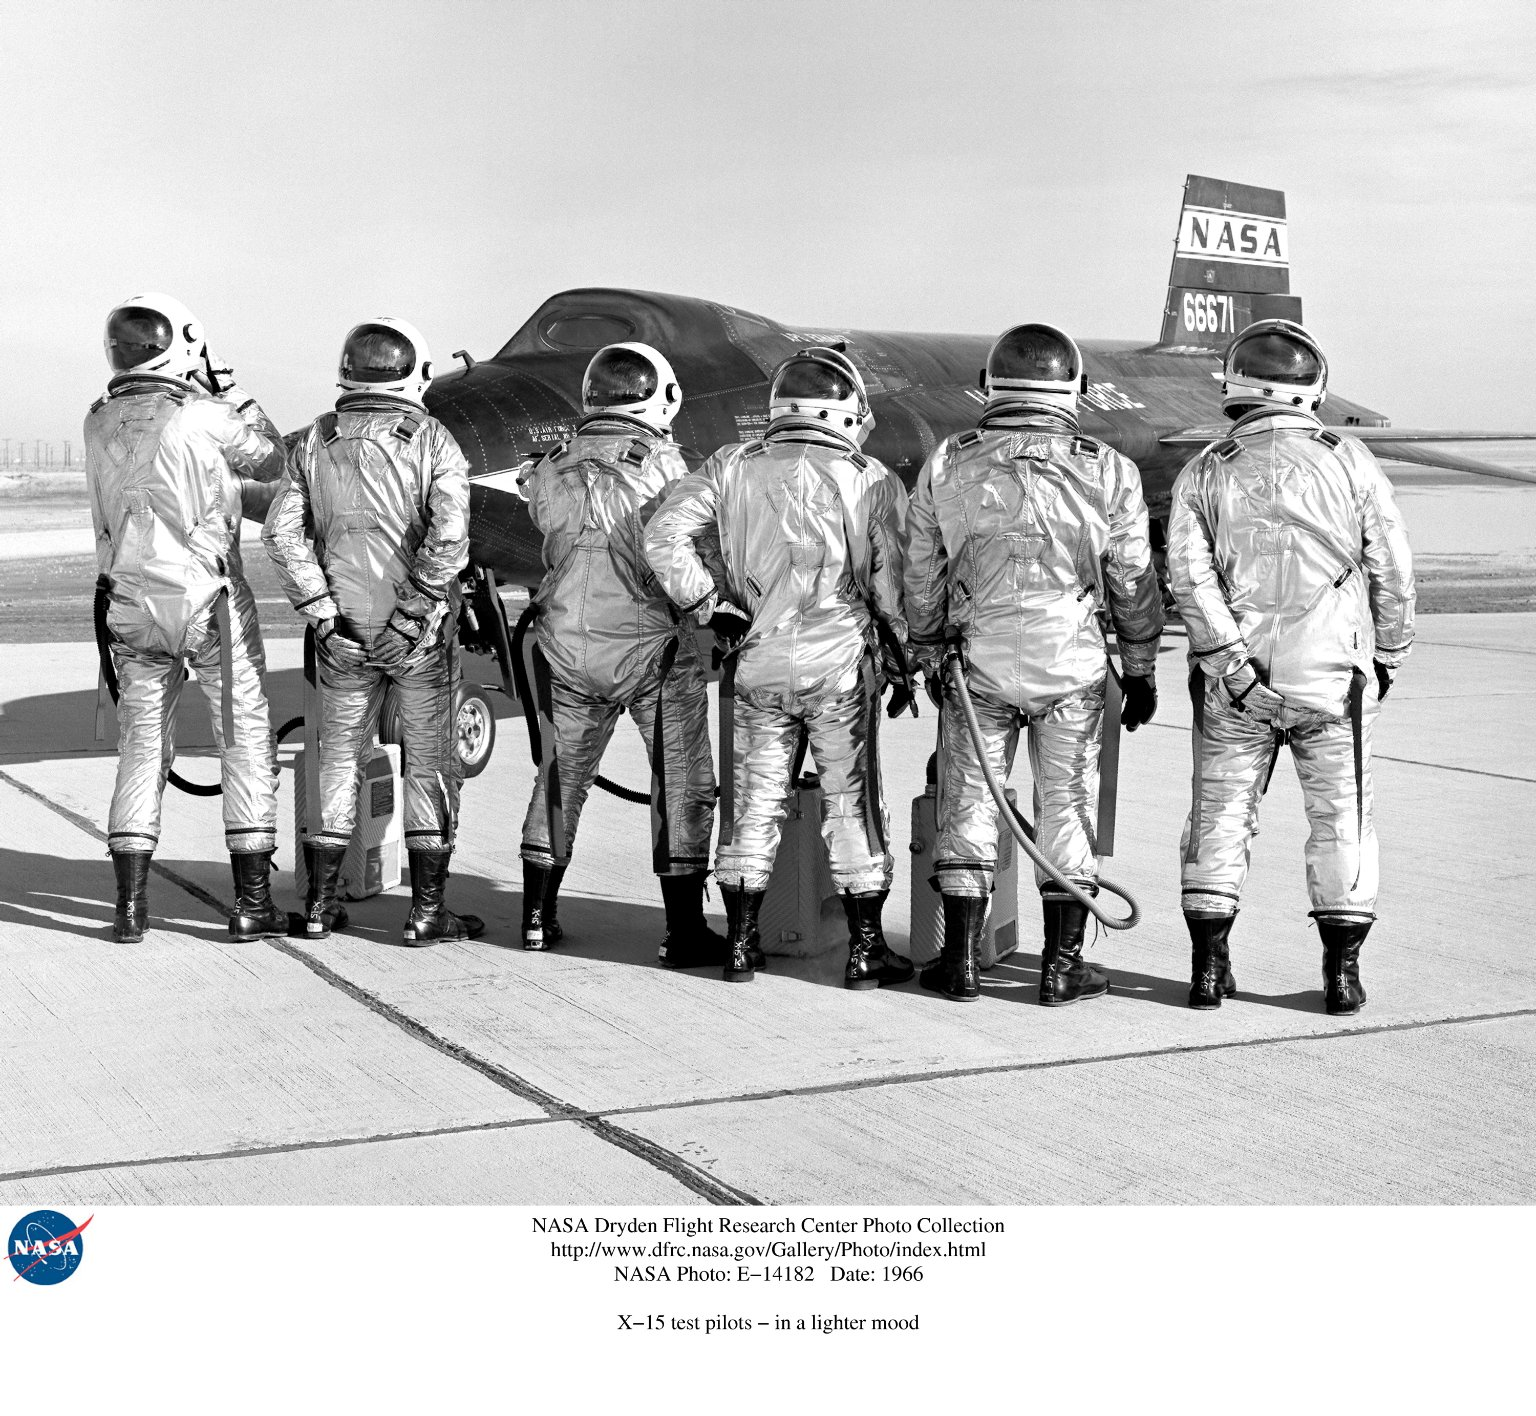 X-15 test pilots - in a lighter mood